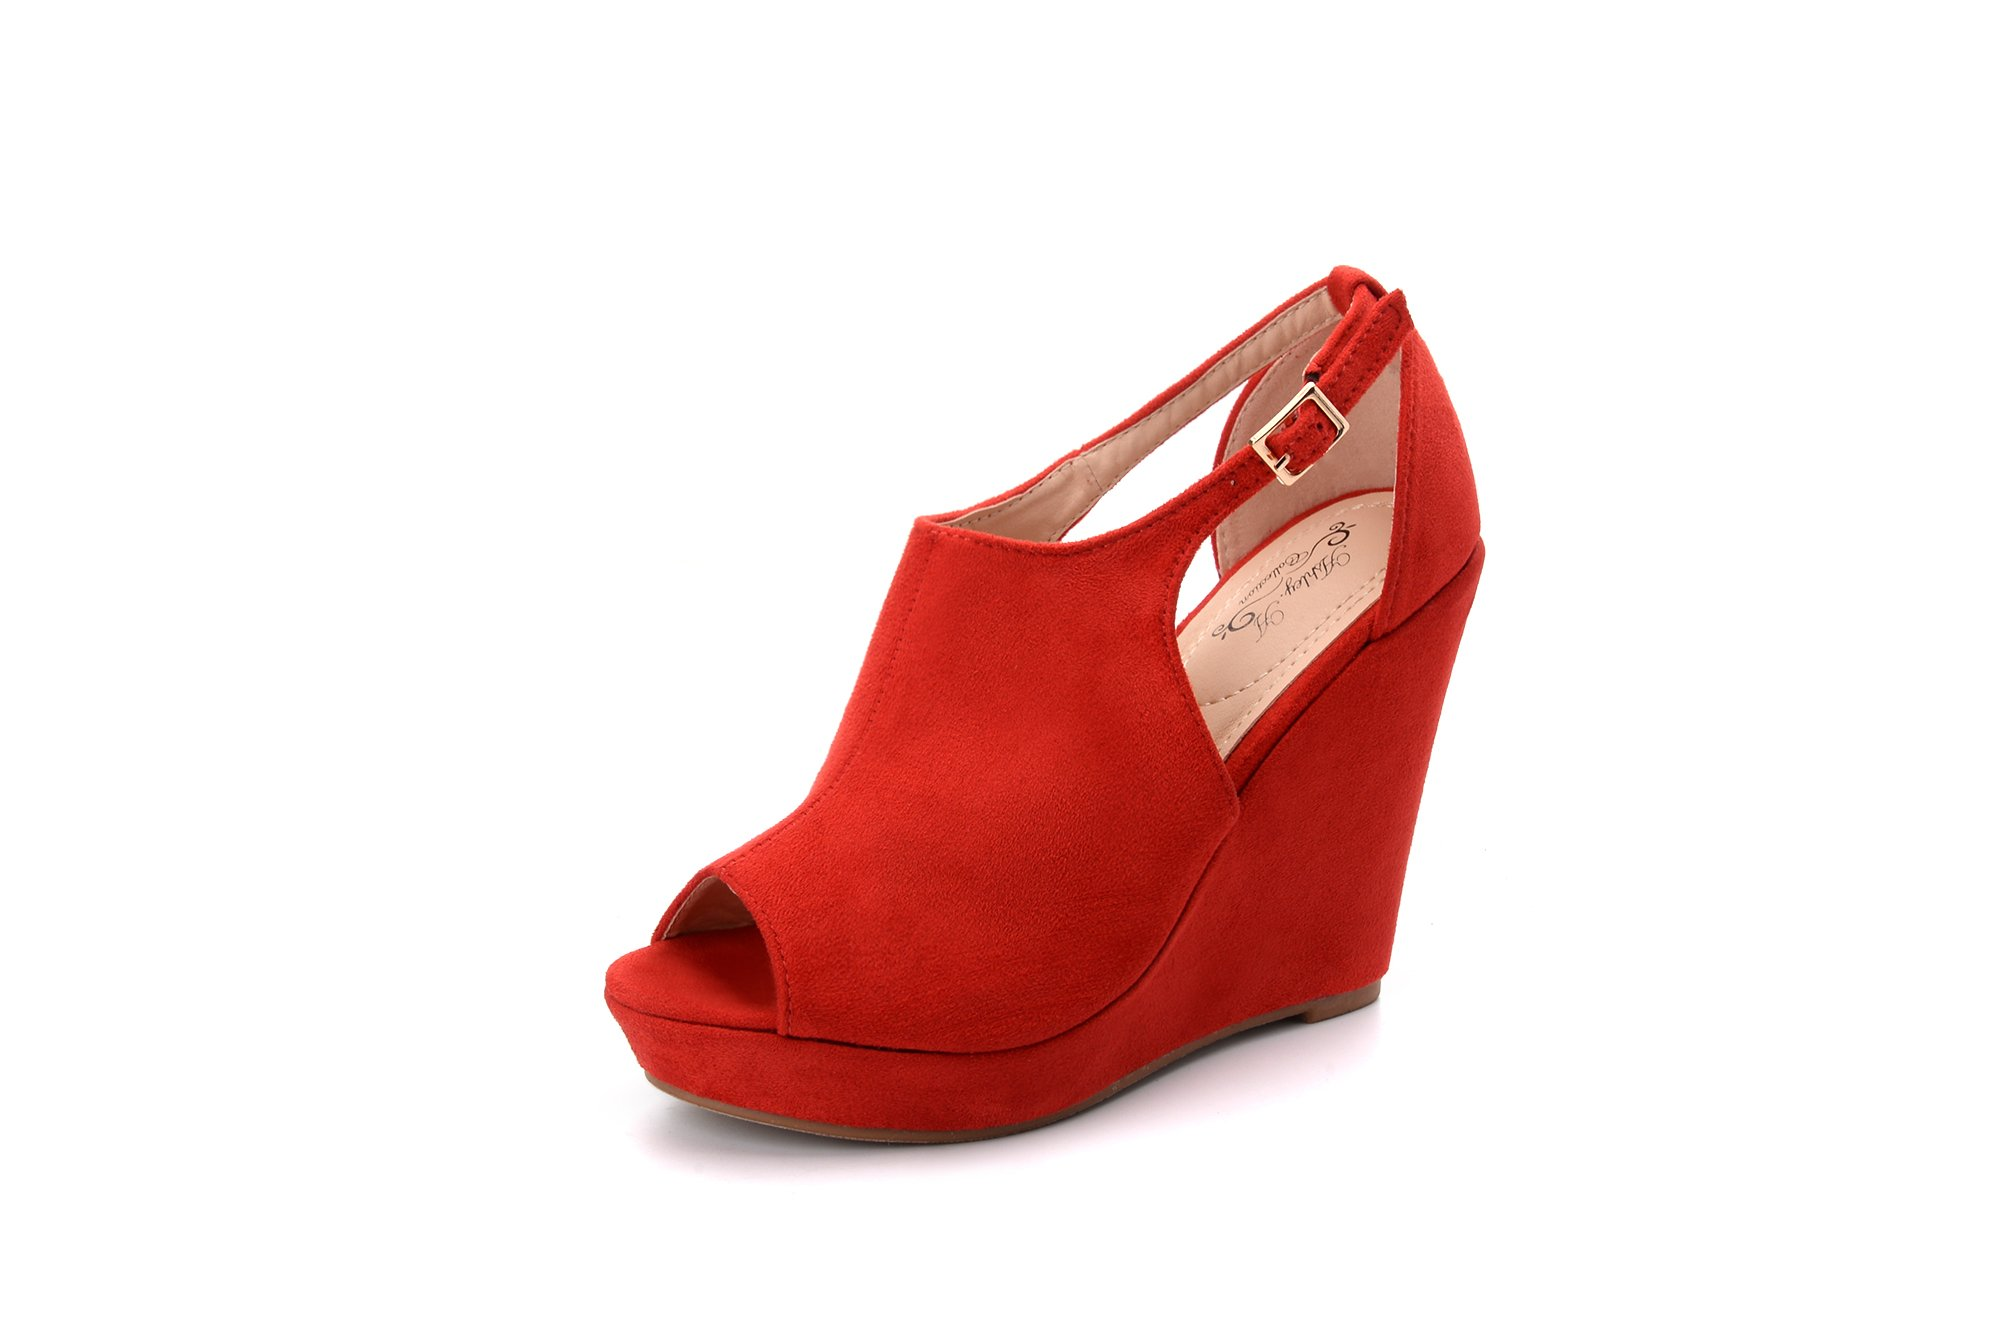 Ashley A Collection LISA02 Women's Platform Wedges Cutout Side Straps,Peep-Toe Ankle Bootie. RED10